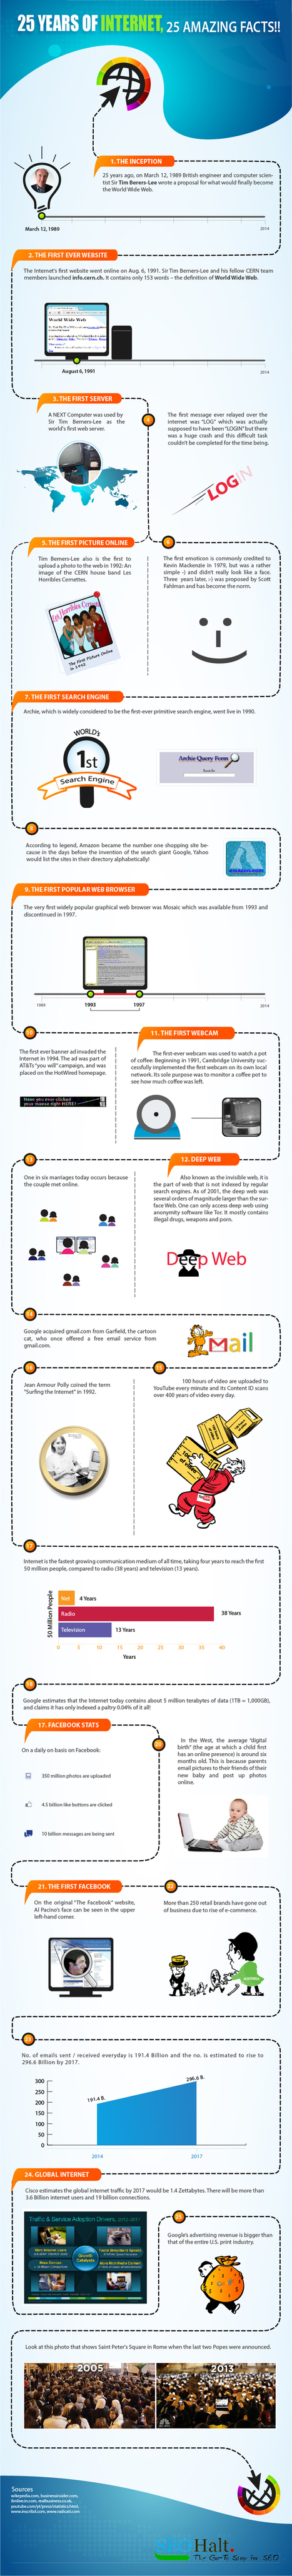 25 Amazing Facts about the Internet [Infographic] | Social media | Scoop.it